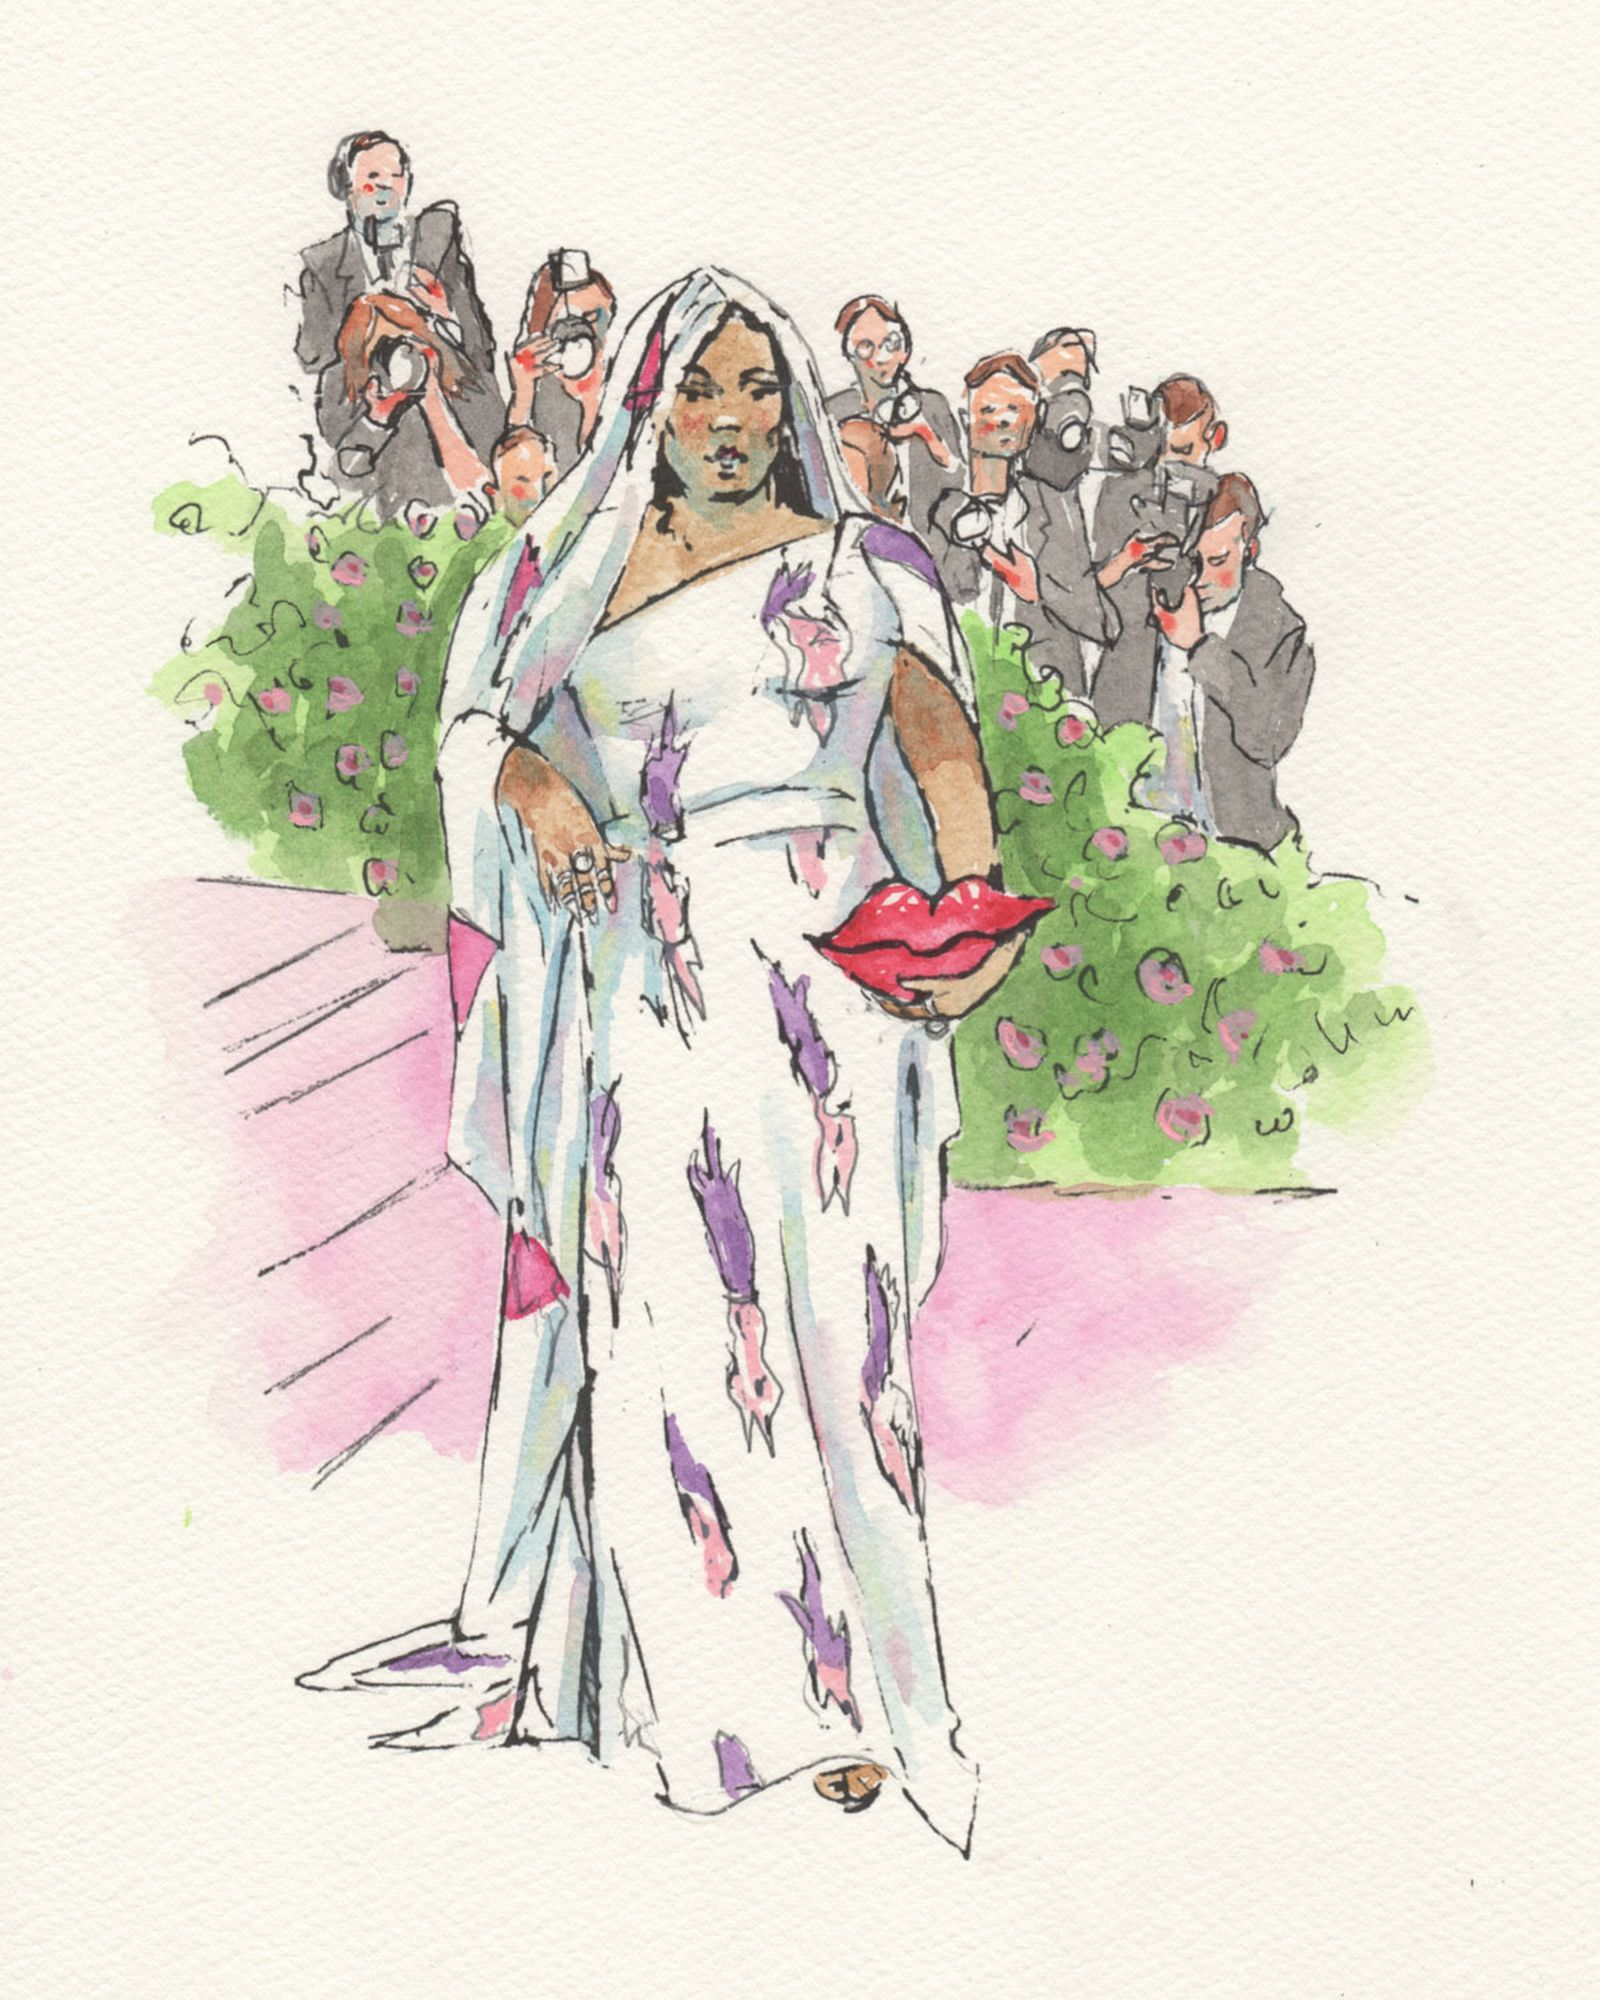 courtroom-sketch-artist-draws-fantasty-met-gala-fits-never-happened-Lizzo